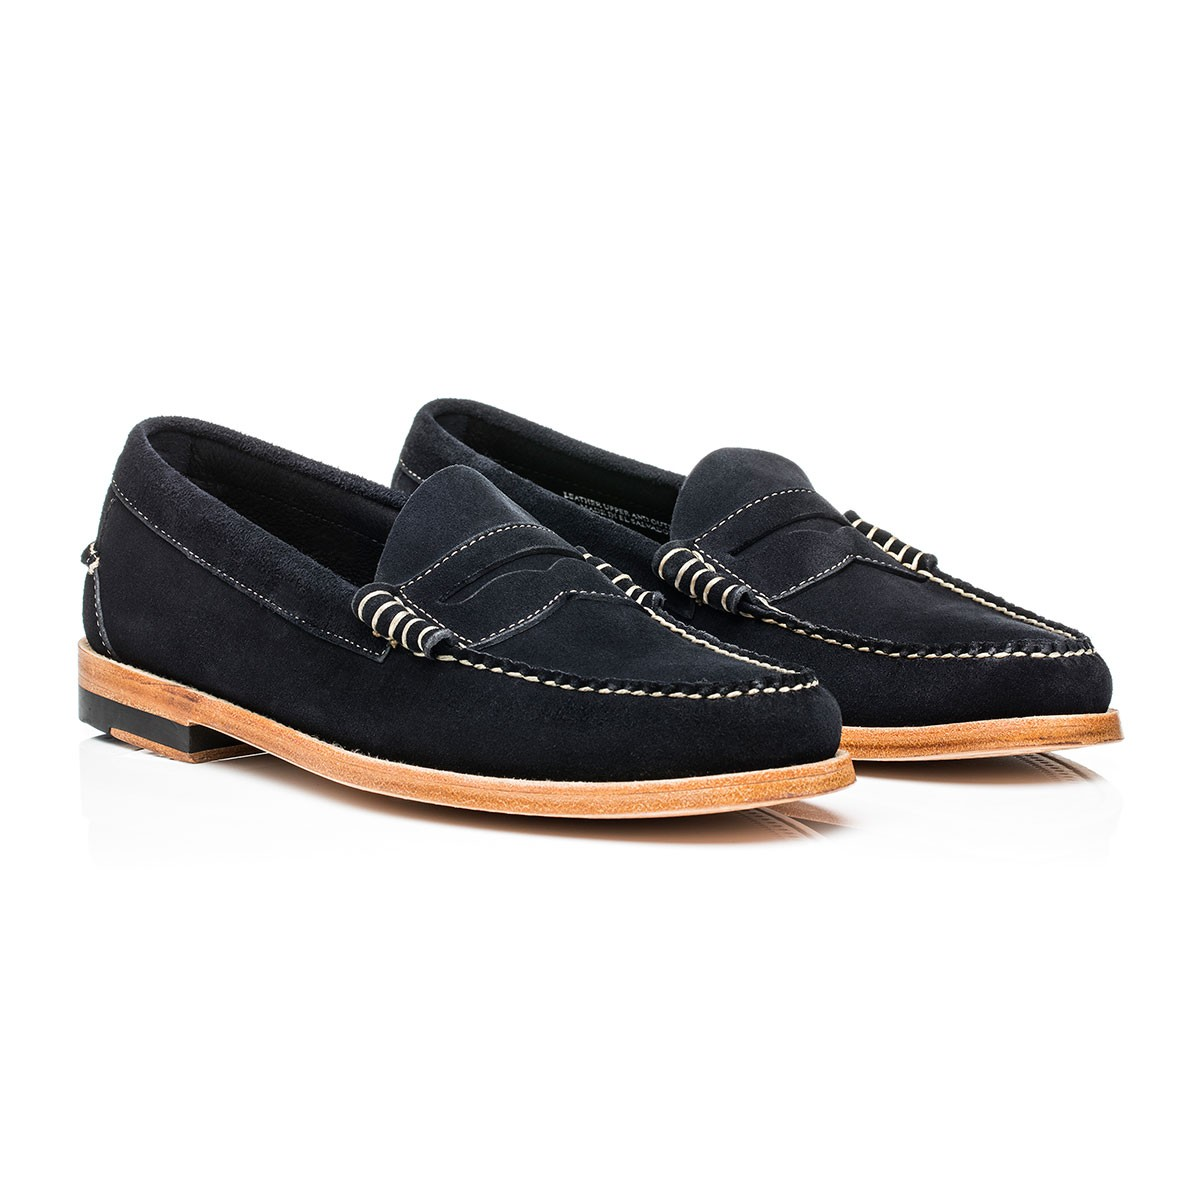 G.H. Bass & Co. Navy Suede Weejuns Larson Stead Suede Navy